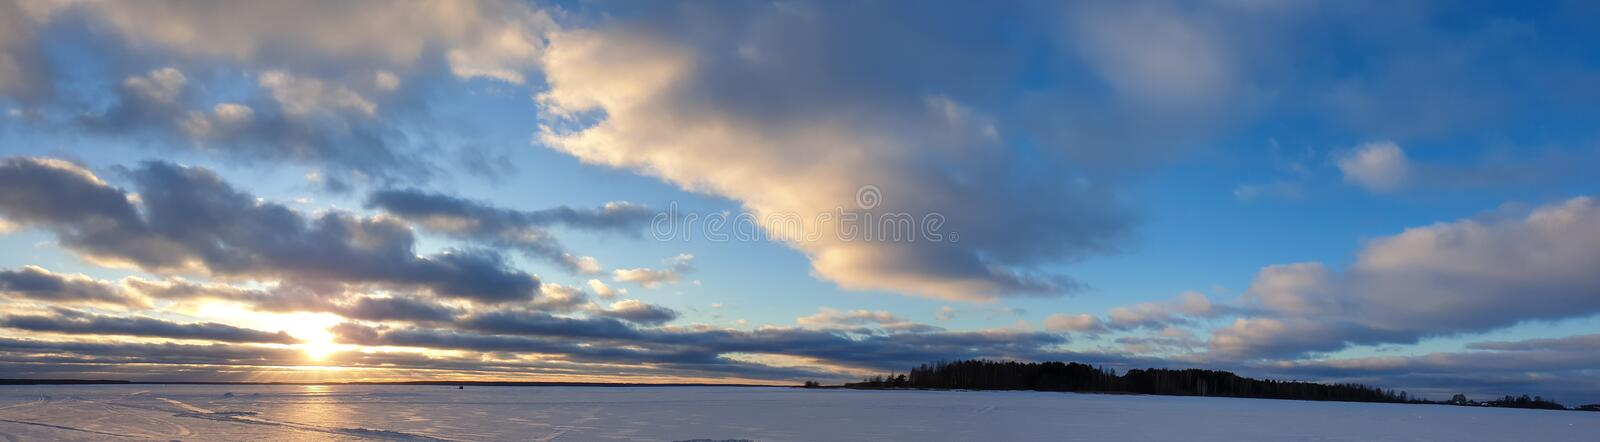 Sunset in winter. The landscape is winter panned. Lake in the woods in winter royalty free stock images